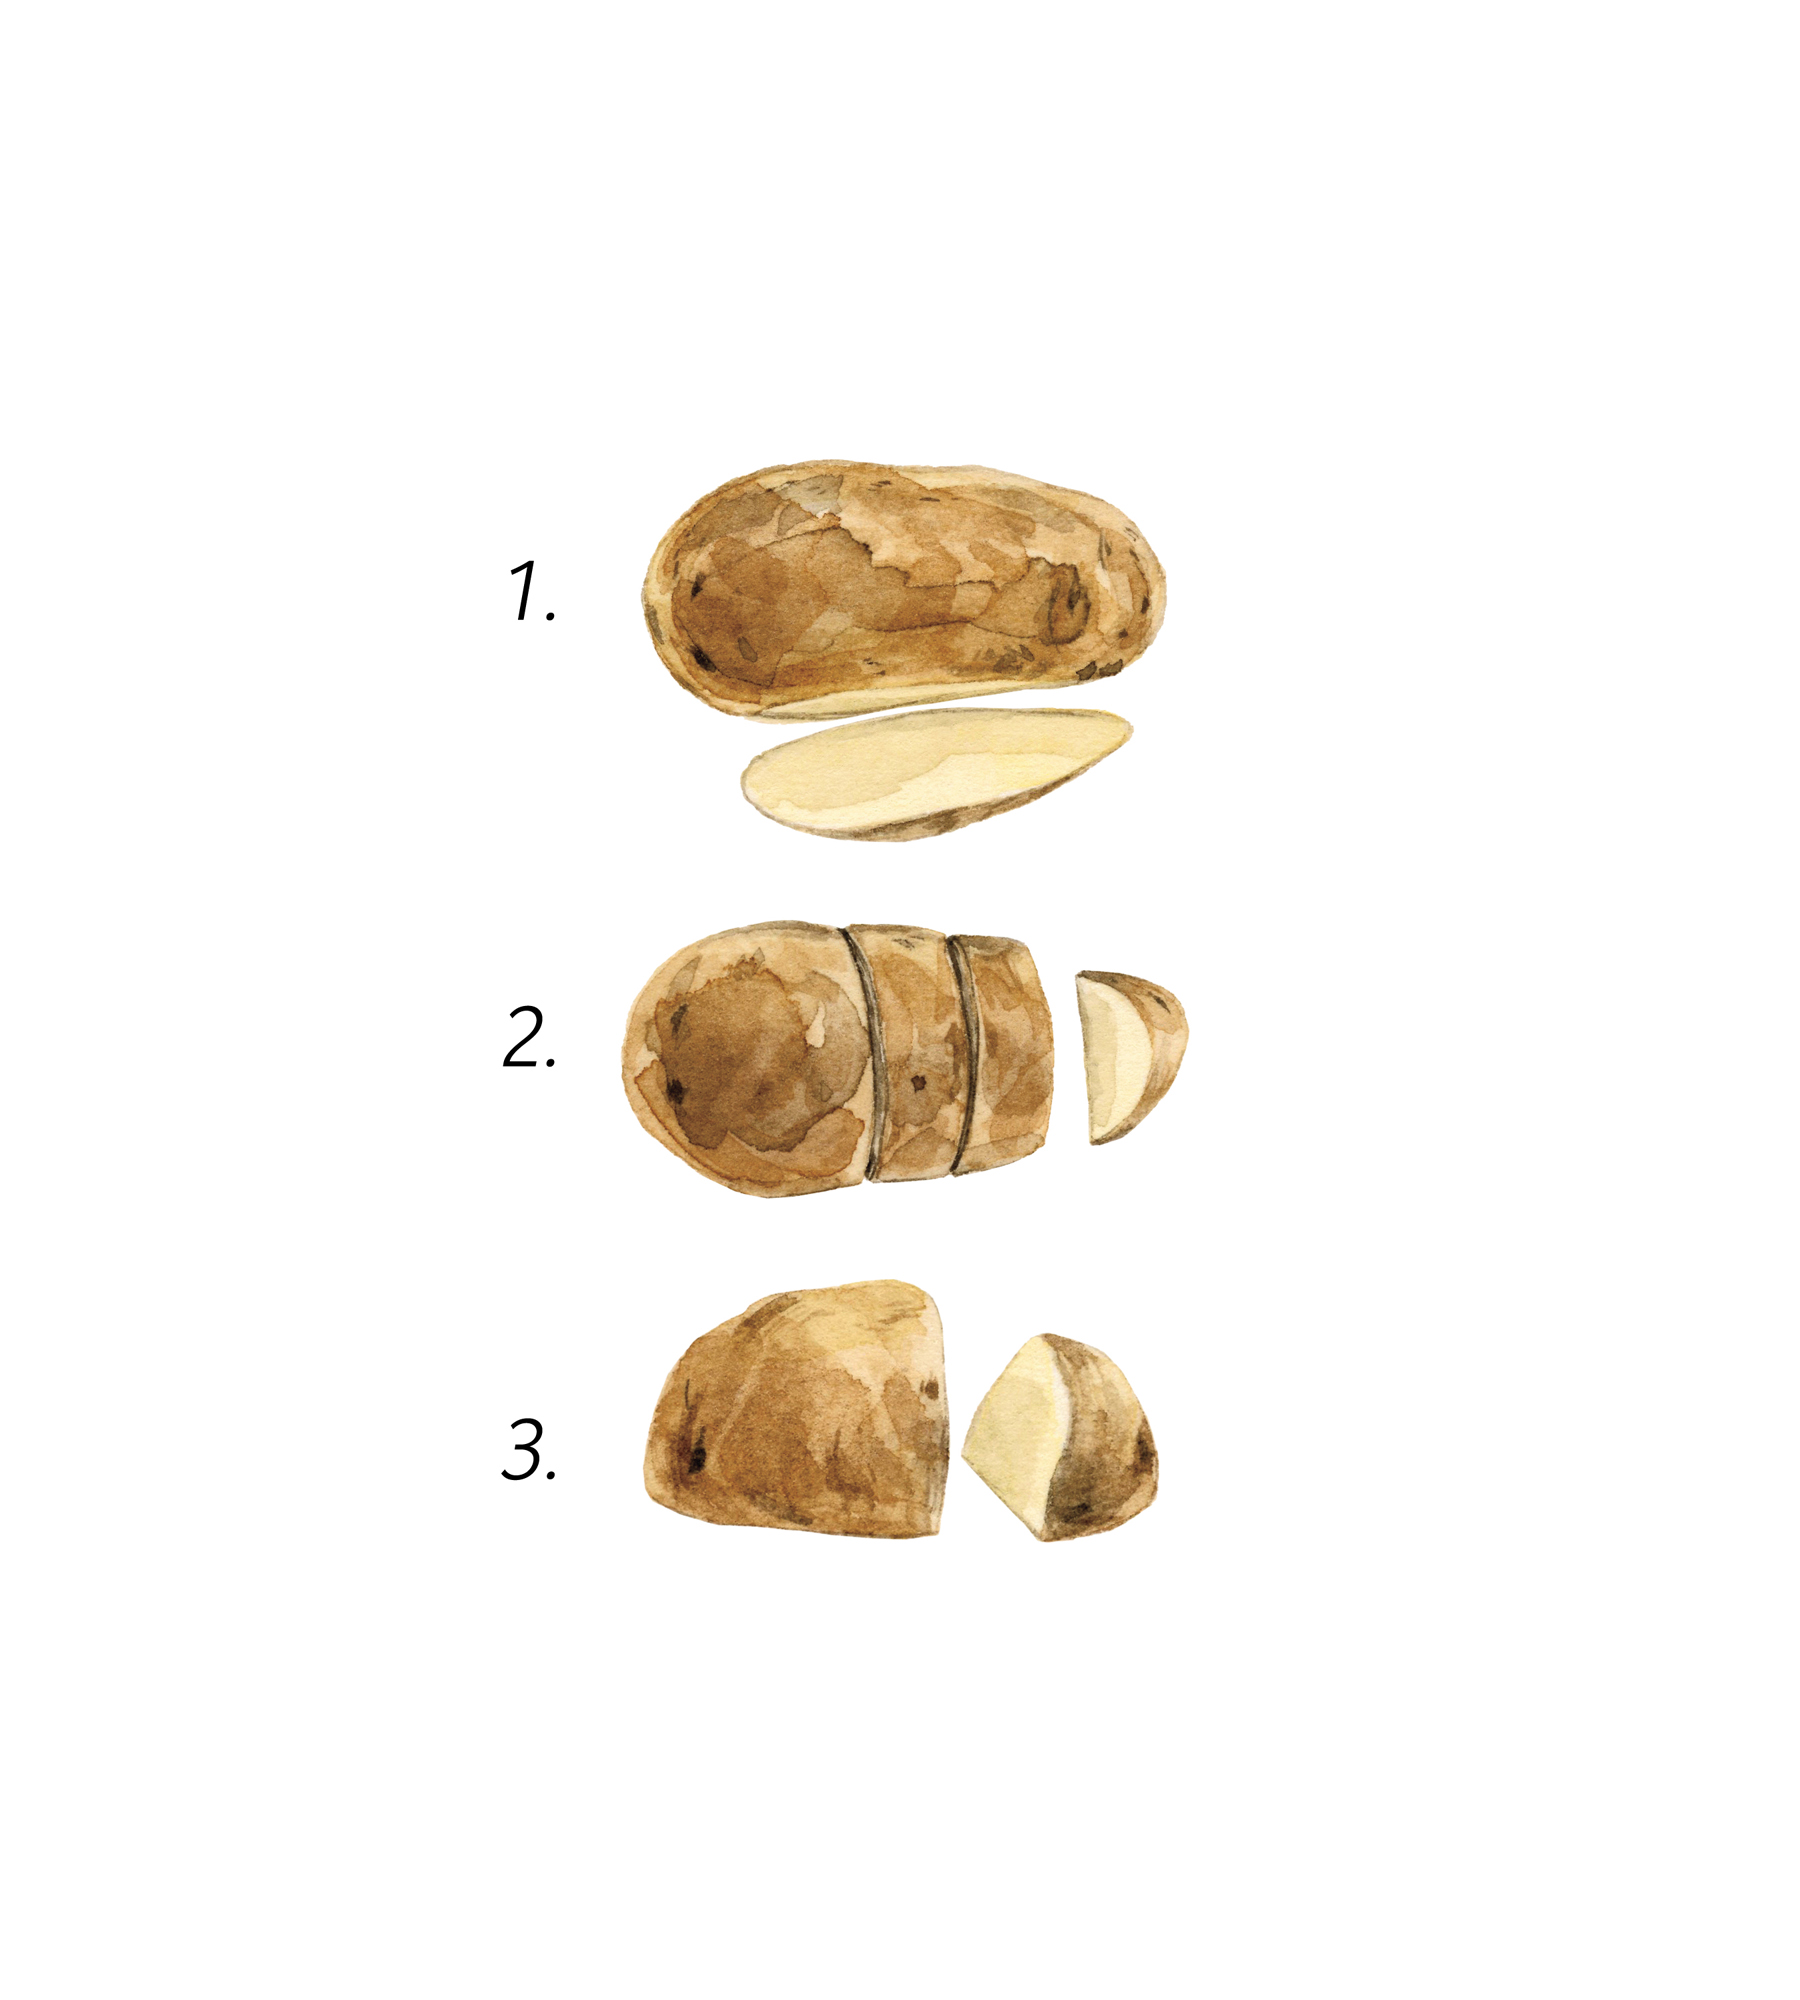 Illustration of how to slice potatoes